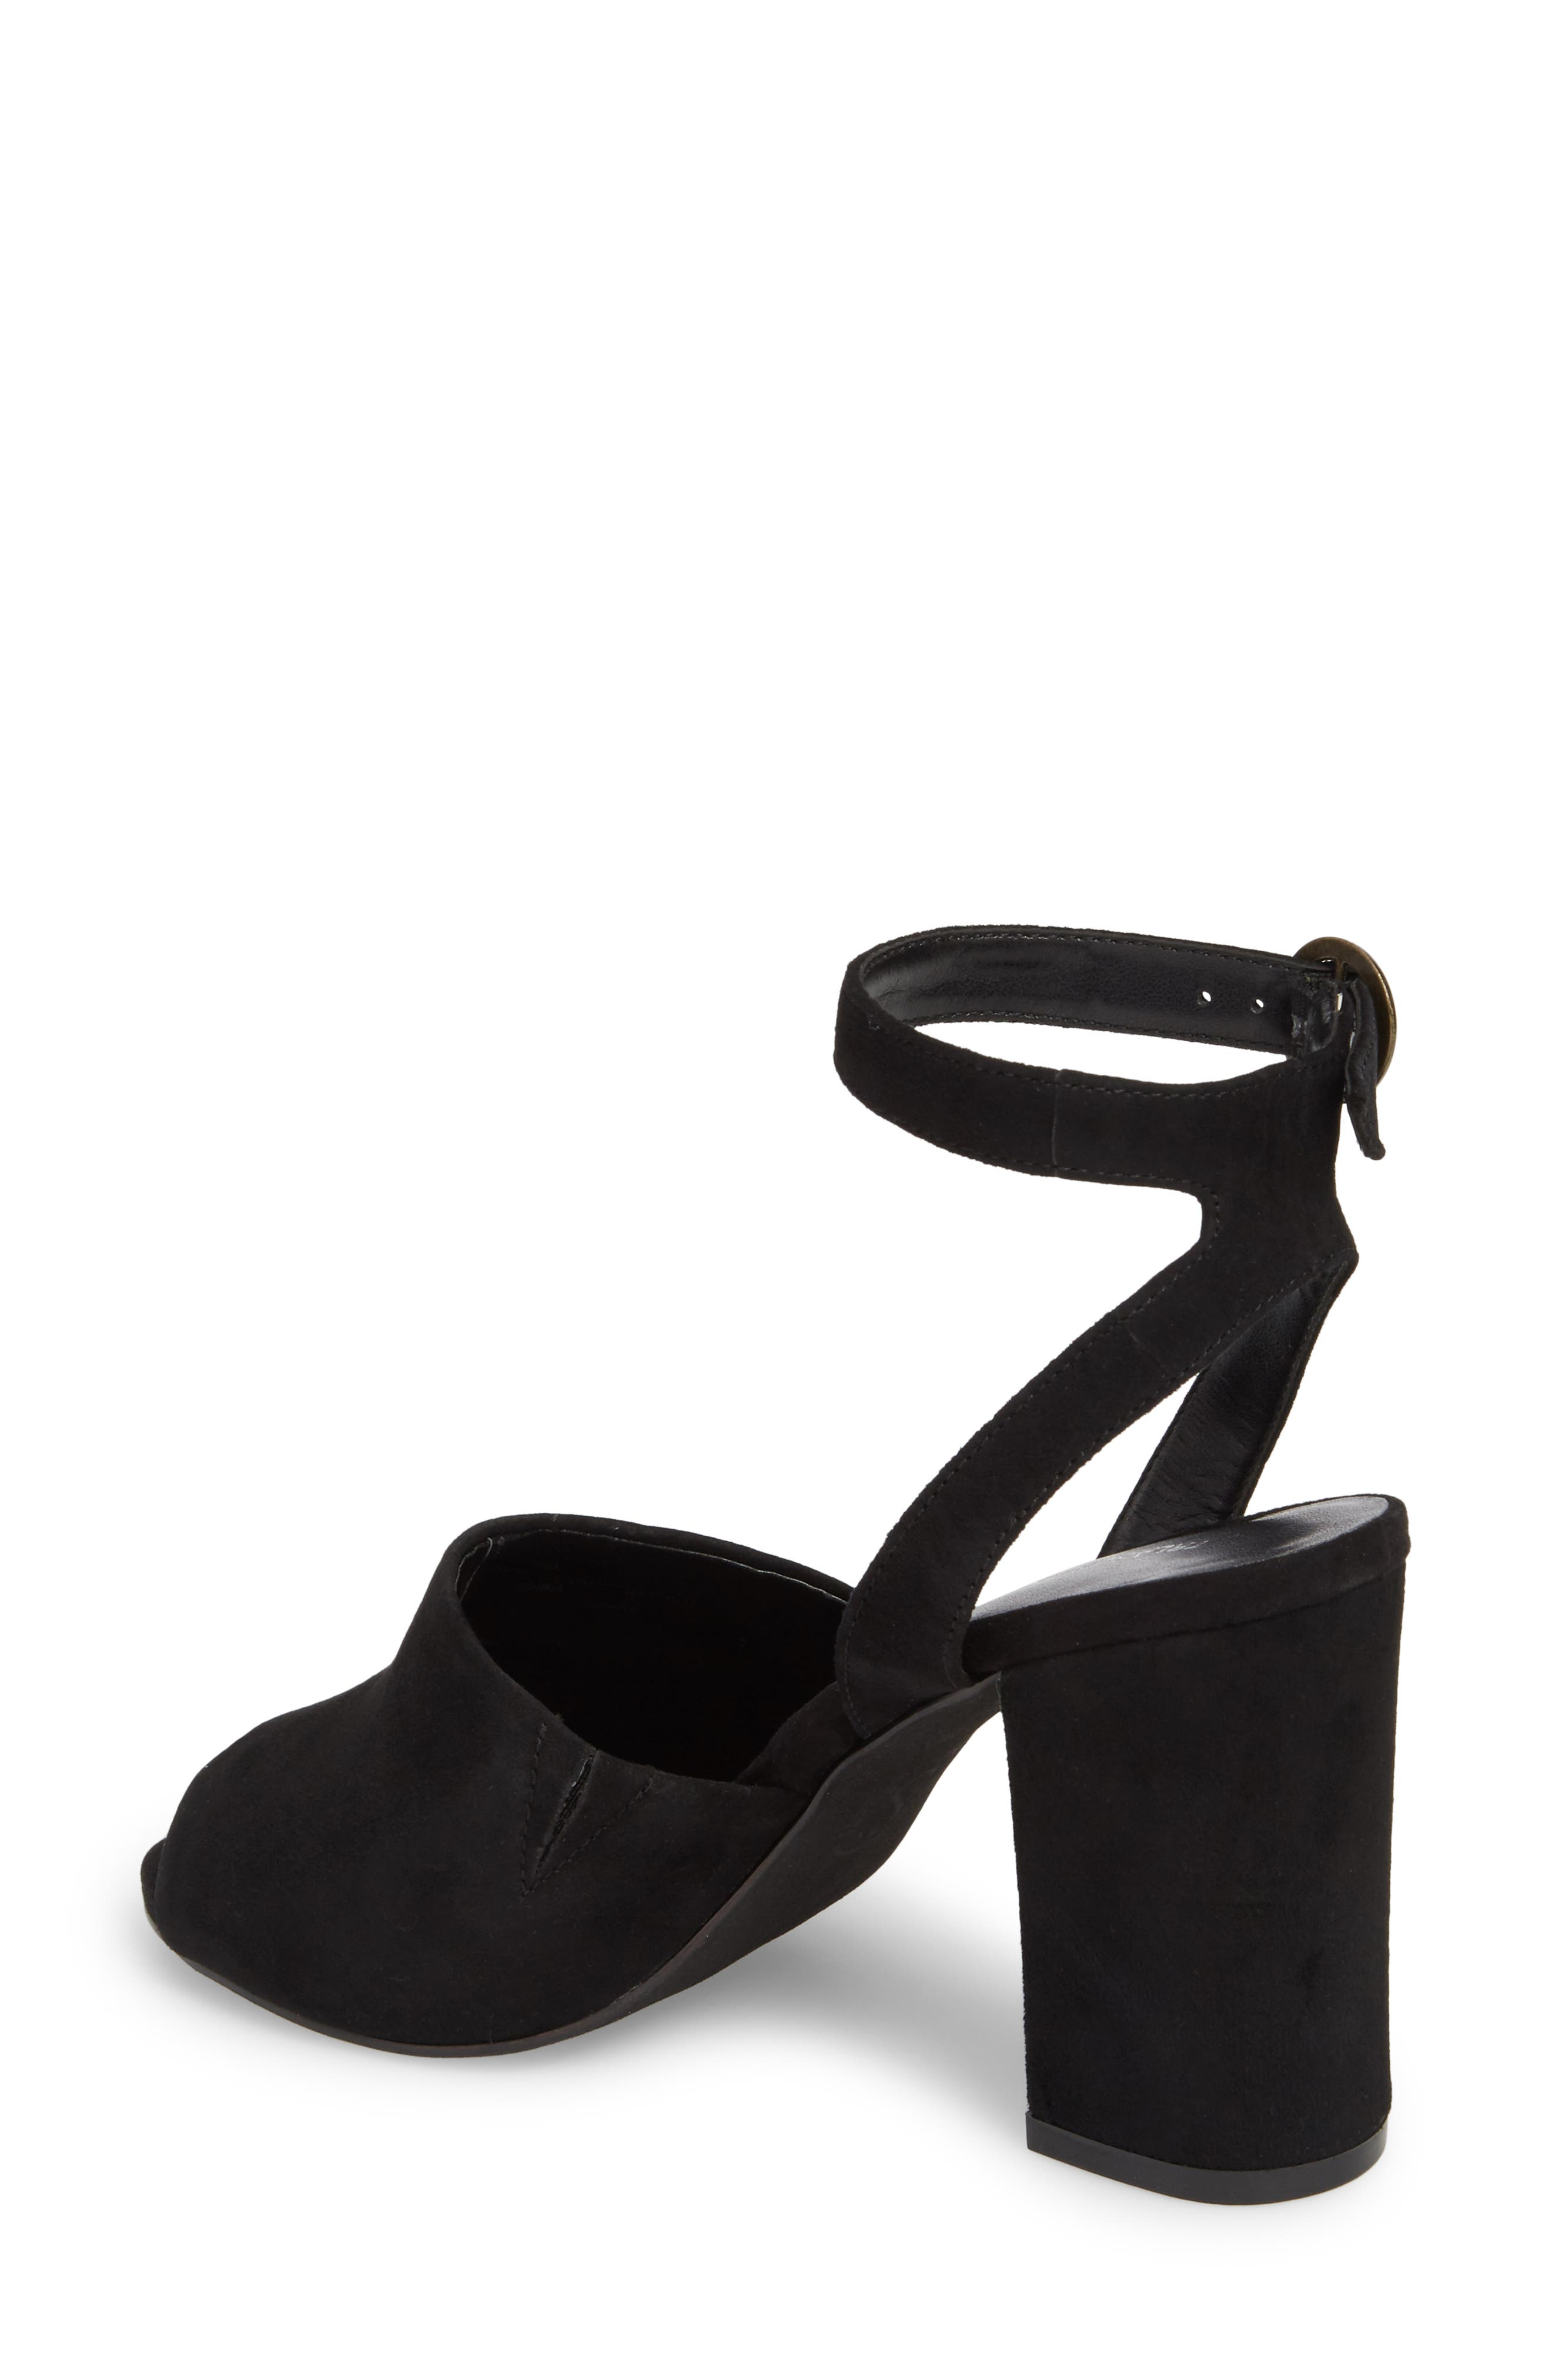 Pipper Block Heel Sandal,                             Alternate thumbnail 2, color,                             BLACK SUEDE